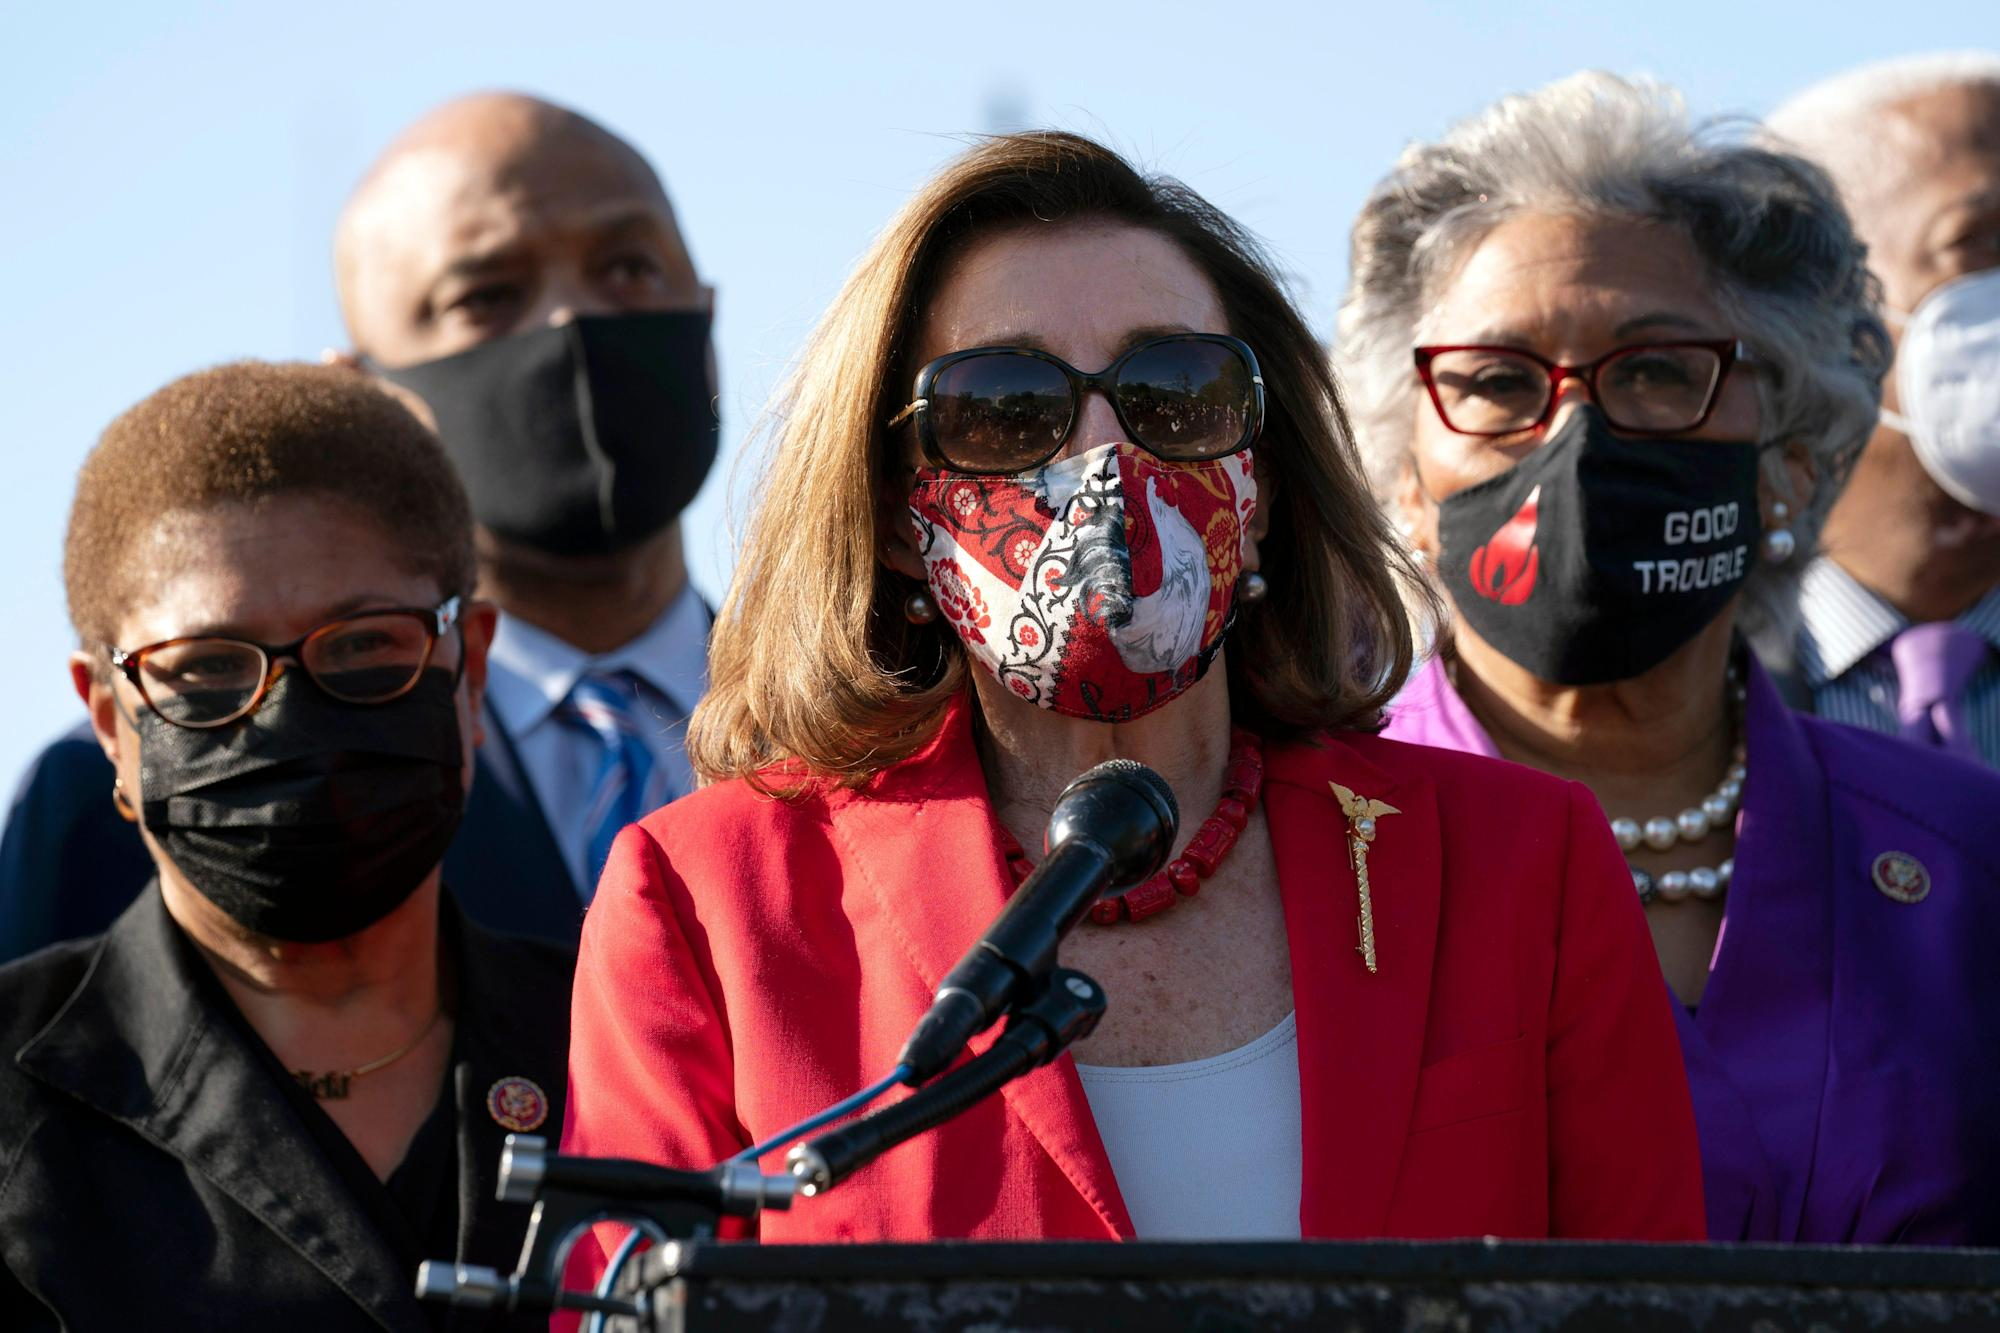 Pelosi criticized over thanking George Floyd for 'sacrificing your life for justice'